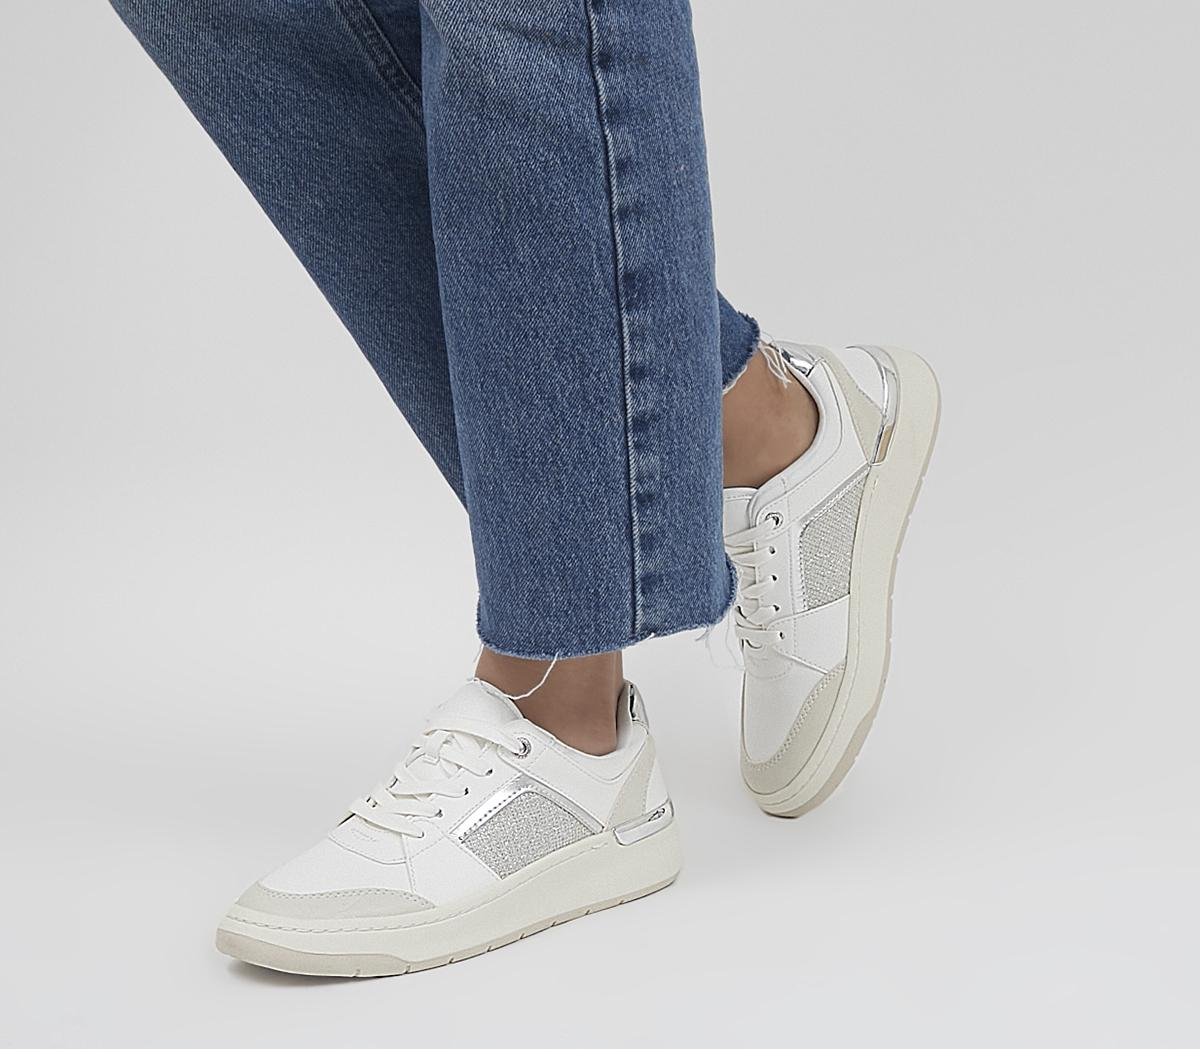 Fairside Feature Heel Clip Lace Up Trainers